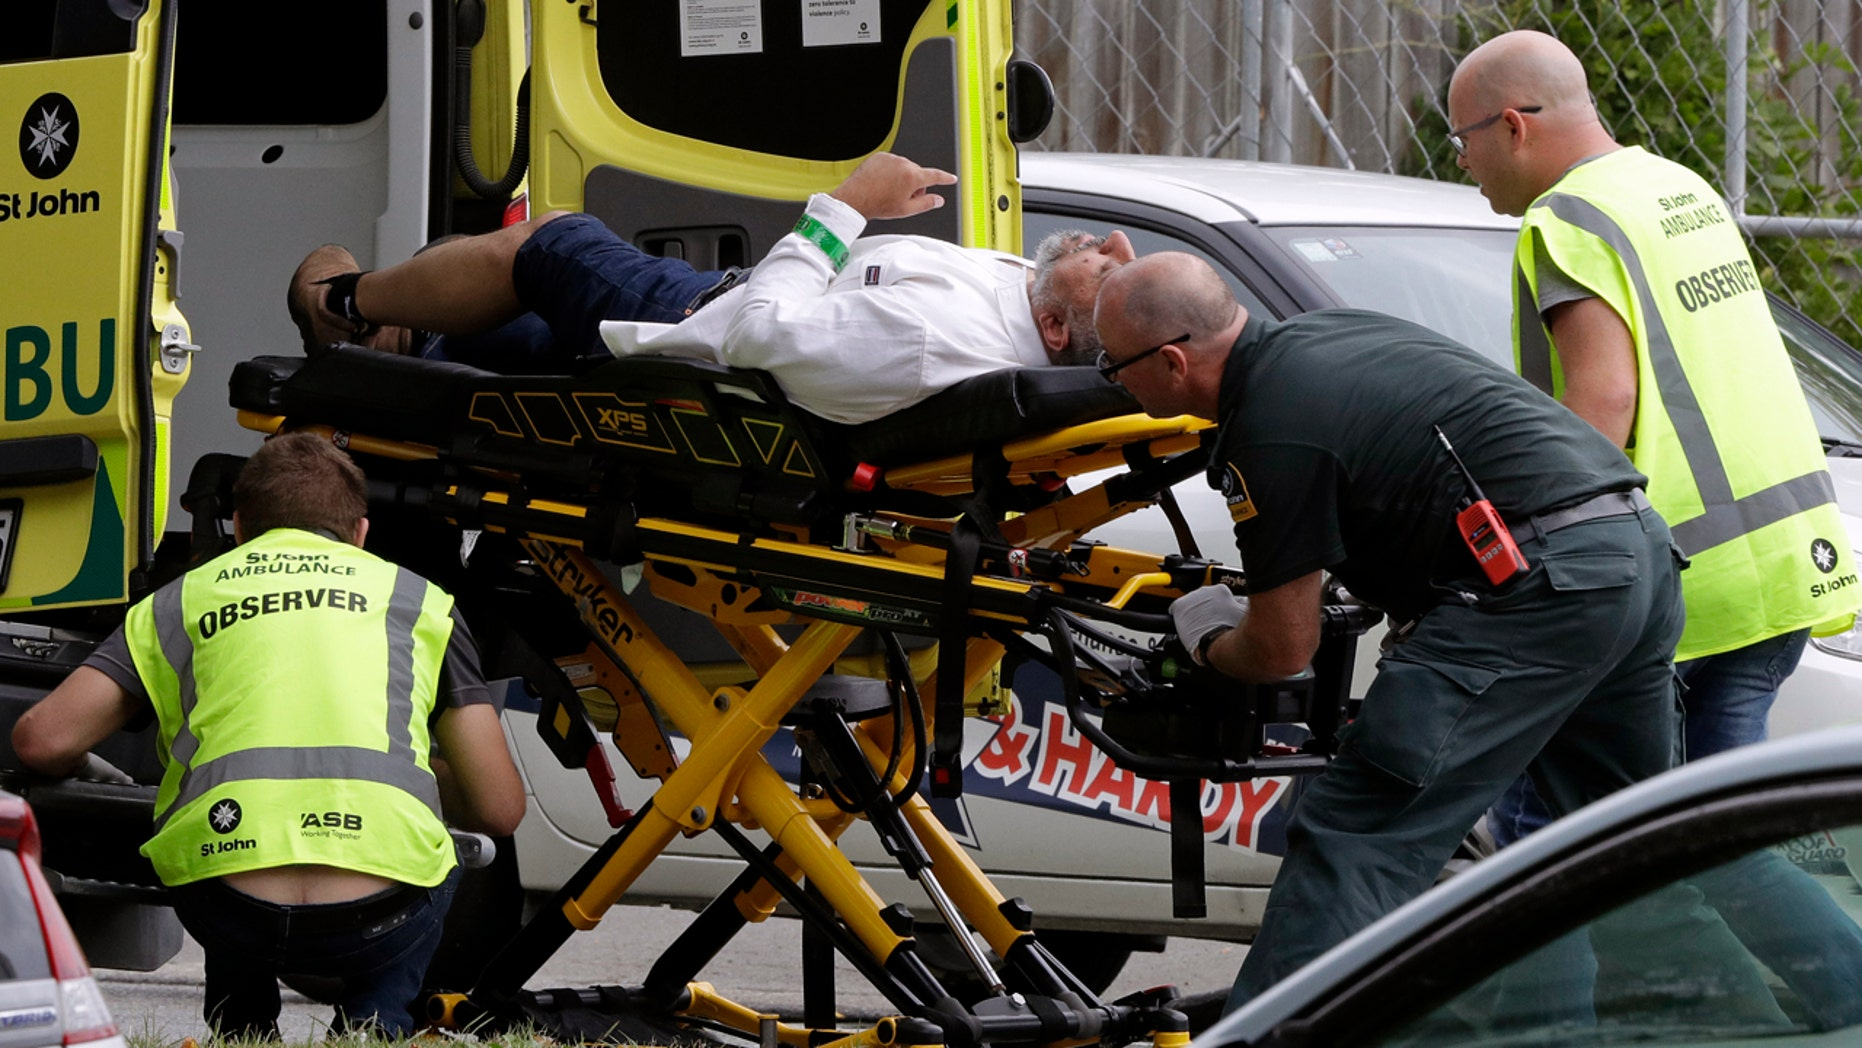 New Zealand Shootings Picture: Witnesses Say Many Dead, Injured In Shooting At New